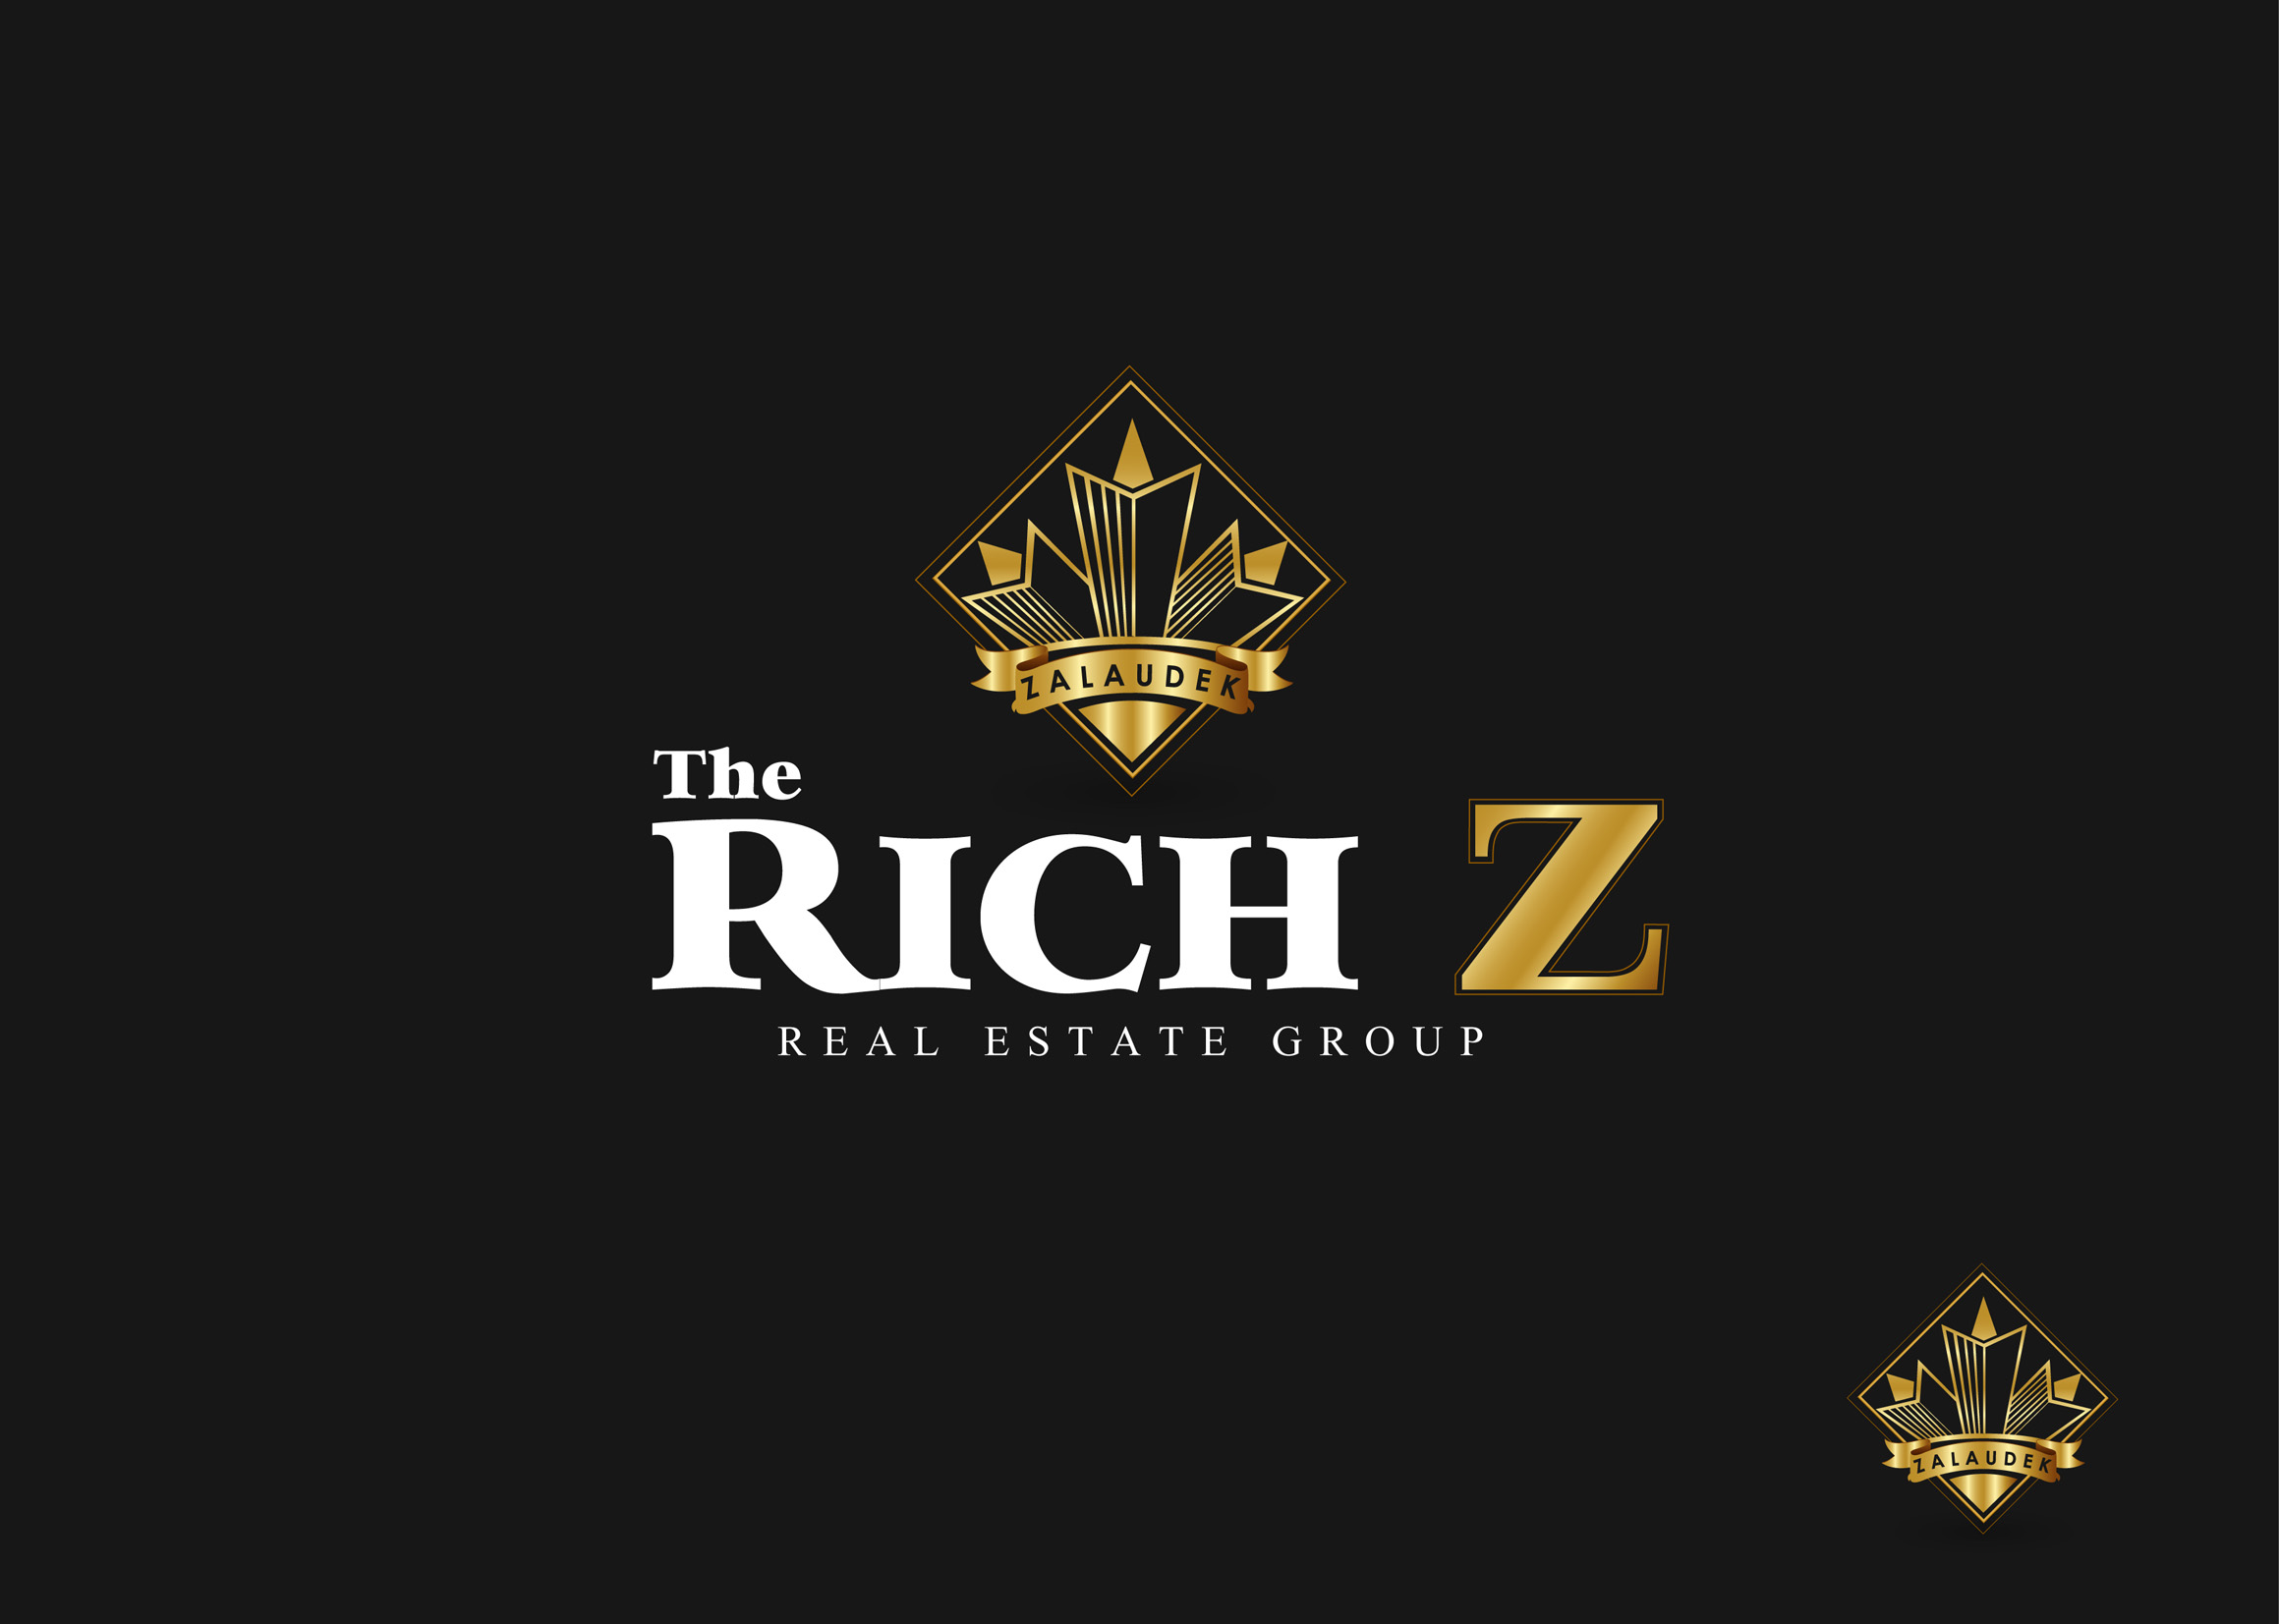 Logo Design by Mark Anthony Moreto Jordan - Entry No. 281 in the Logo Design Contest The Rich Z. Real Estate Group Logo Design.